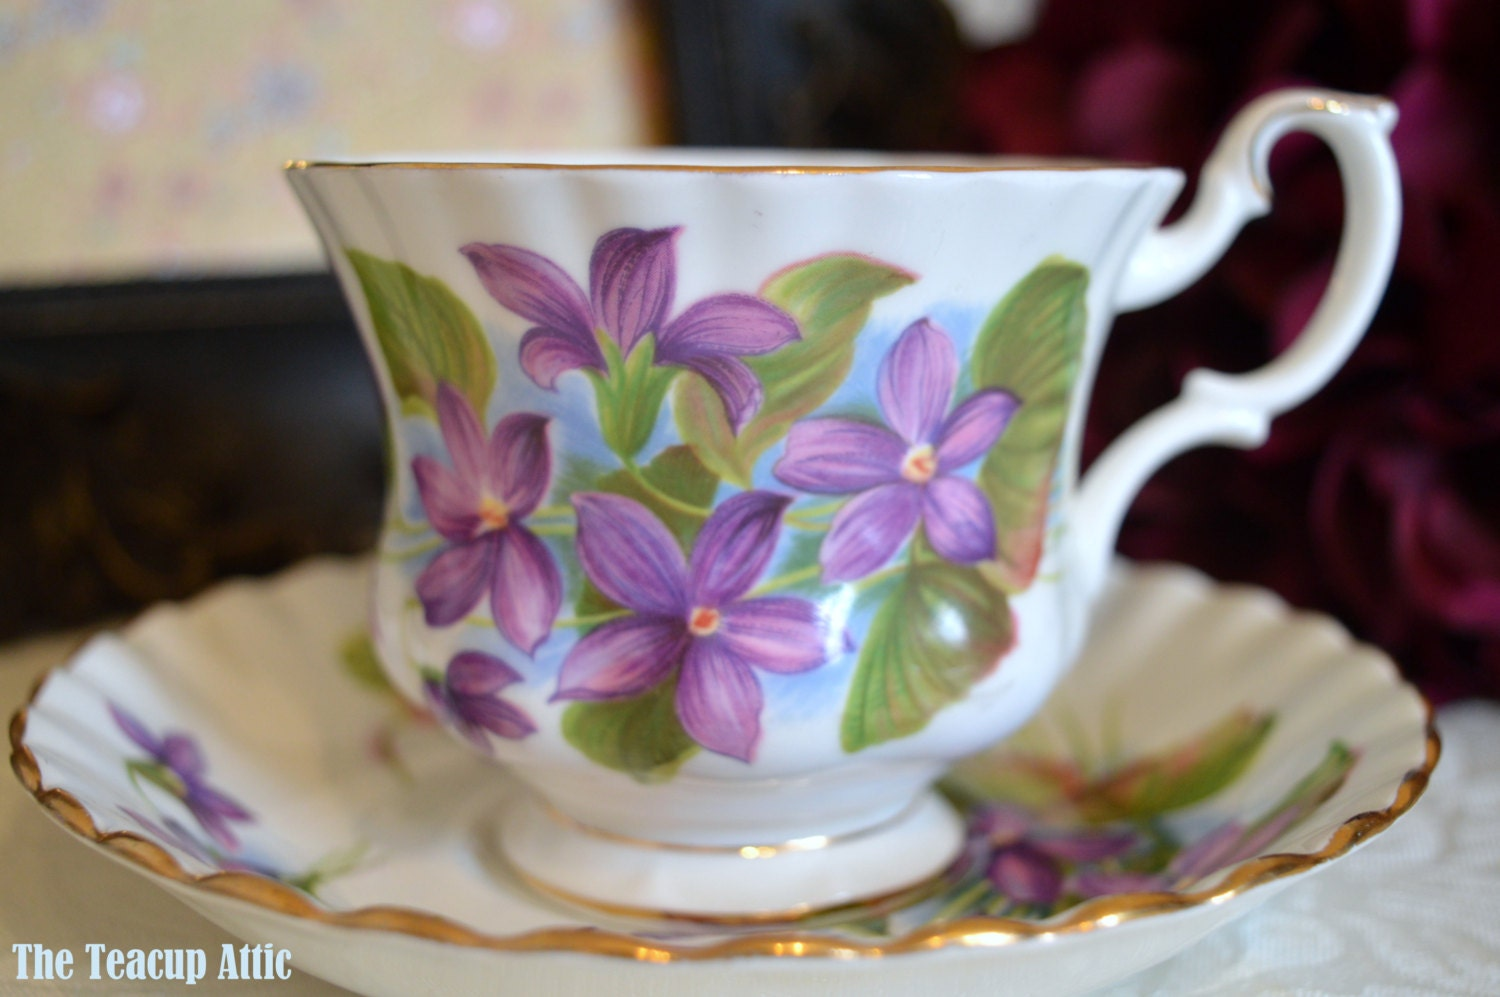 ON SALE Royal Albert Purple Violet Teacup and Saucer, English Bone china, Garden Party, Wedding Gift,  ca. 1970-1980